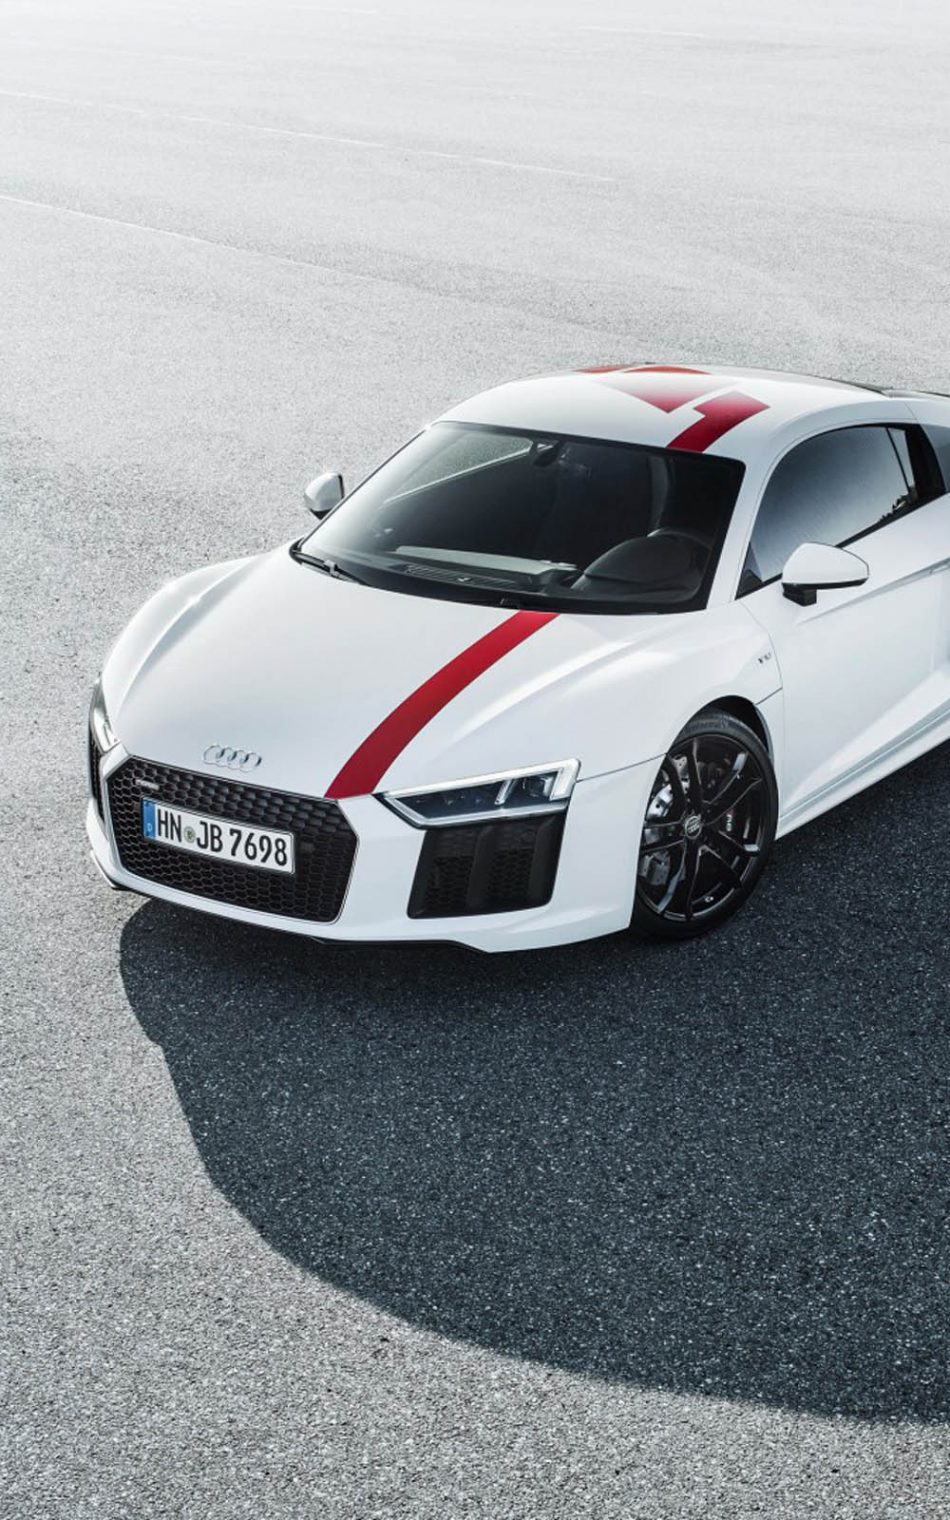 White Audi R8 V10 Rws 2018 4k Ultra Hd Mobile Wallpaper